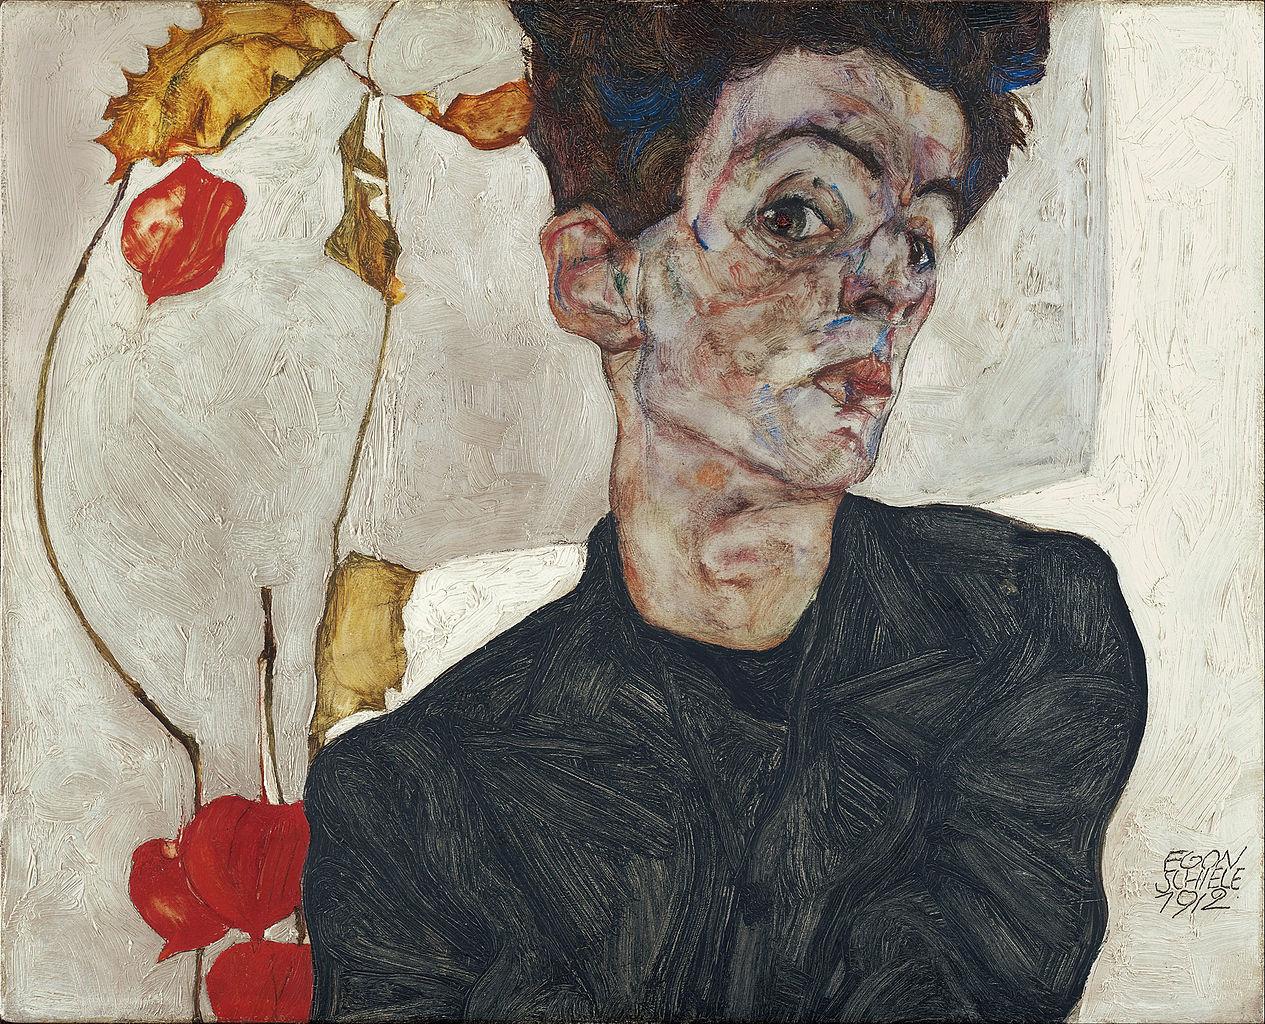 Self-portrait with Chinese Lanterns (1912) by Egon Schiele. As reproduced in 30,000 Years of Art